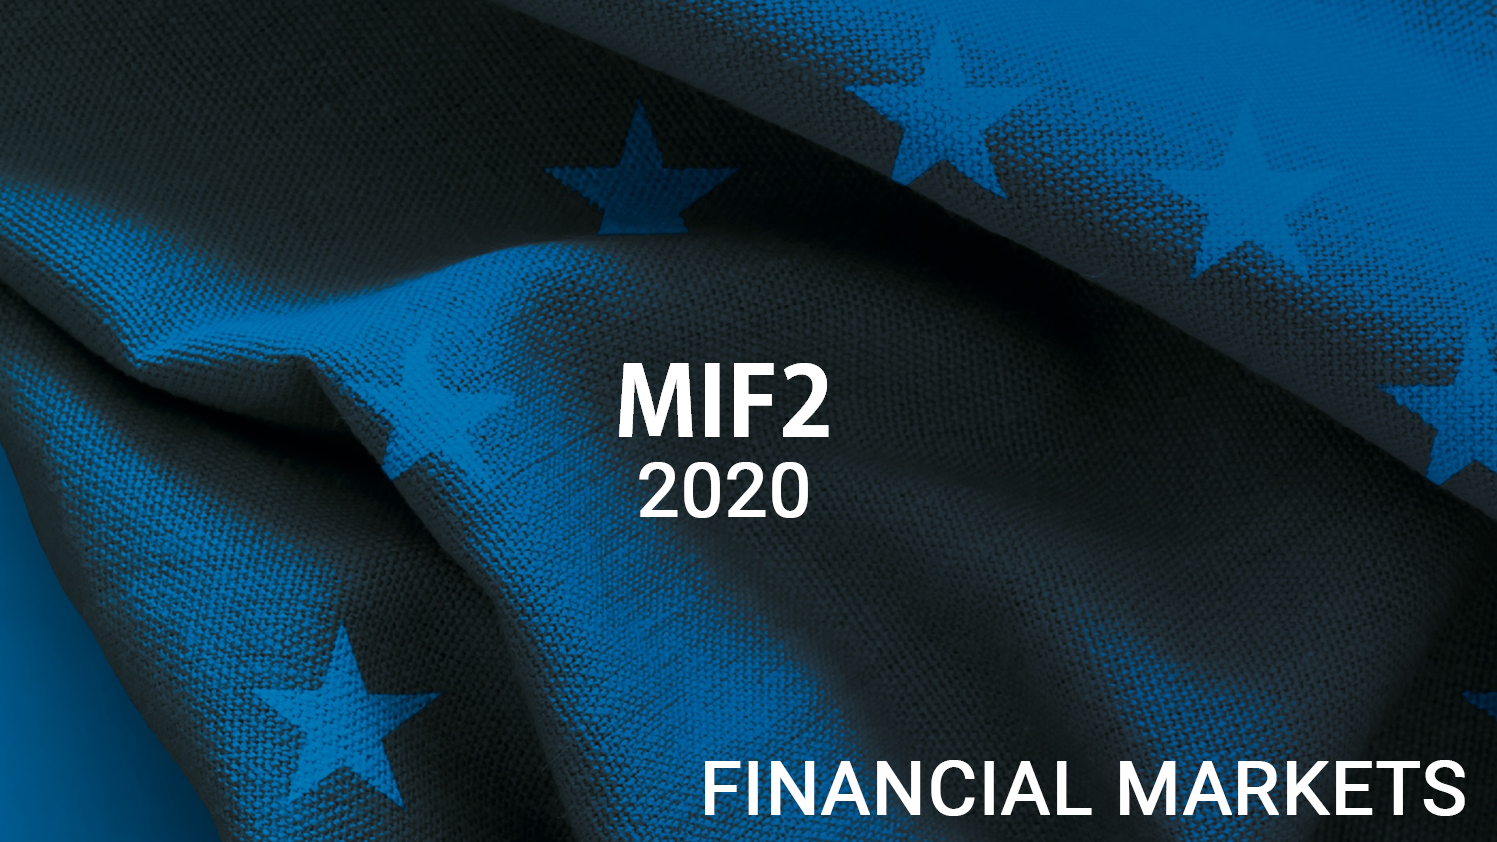 MIF2 - Common Core and Financial Market 2020